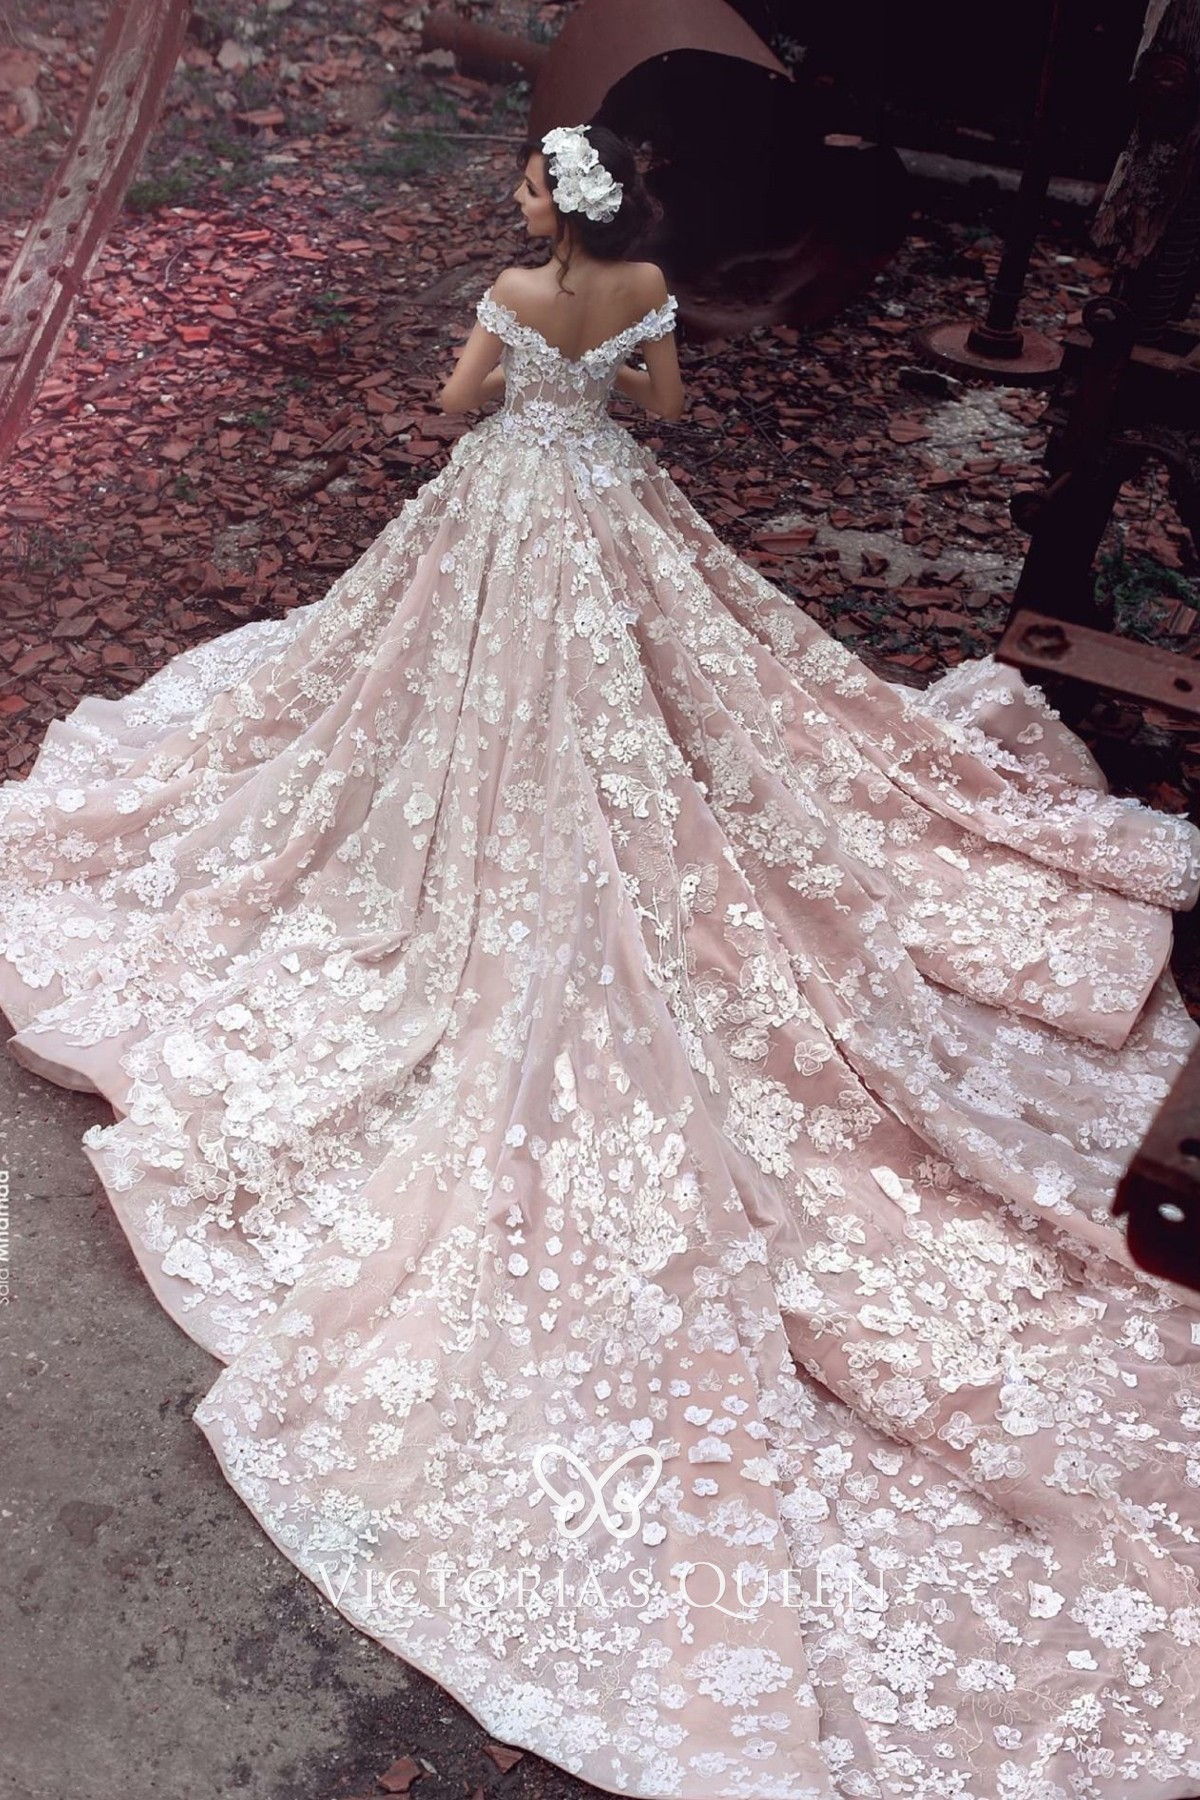 Floral Lace Nude Pink Wedding Gown with Cathedral Train